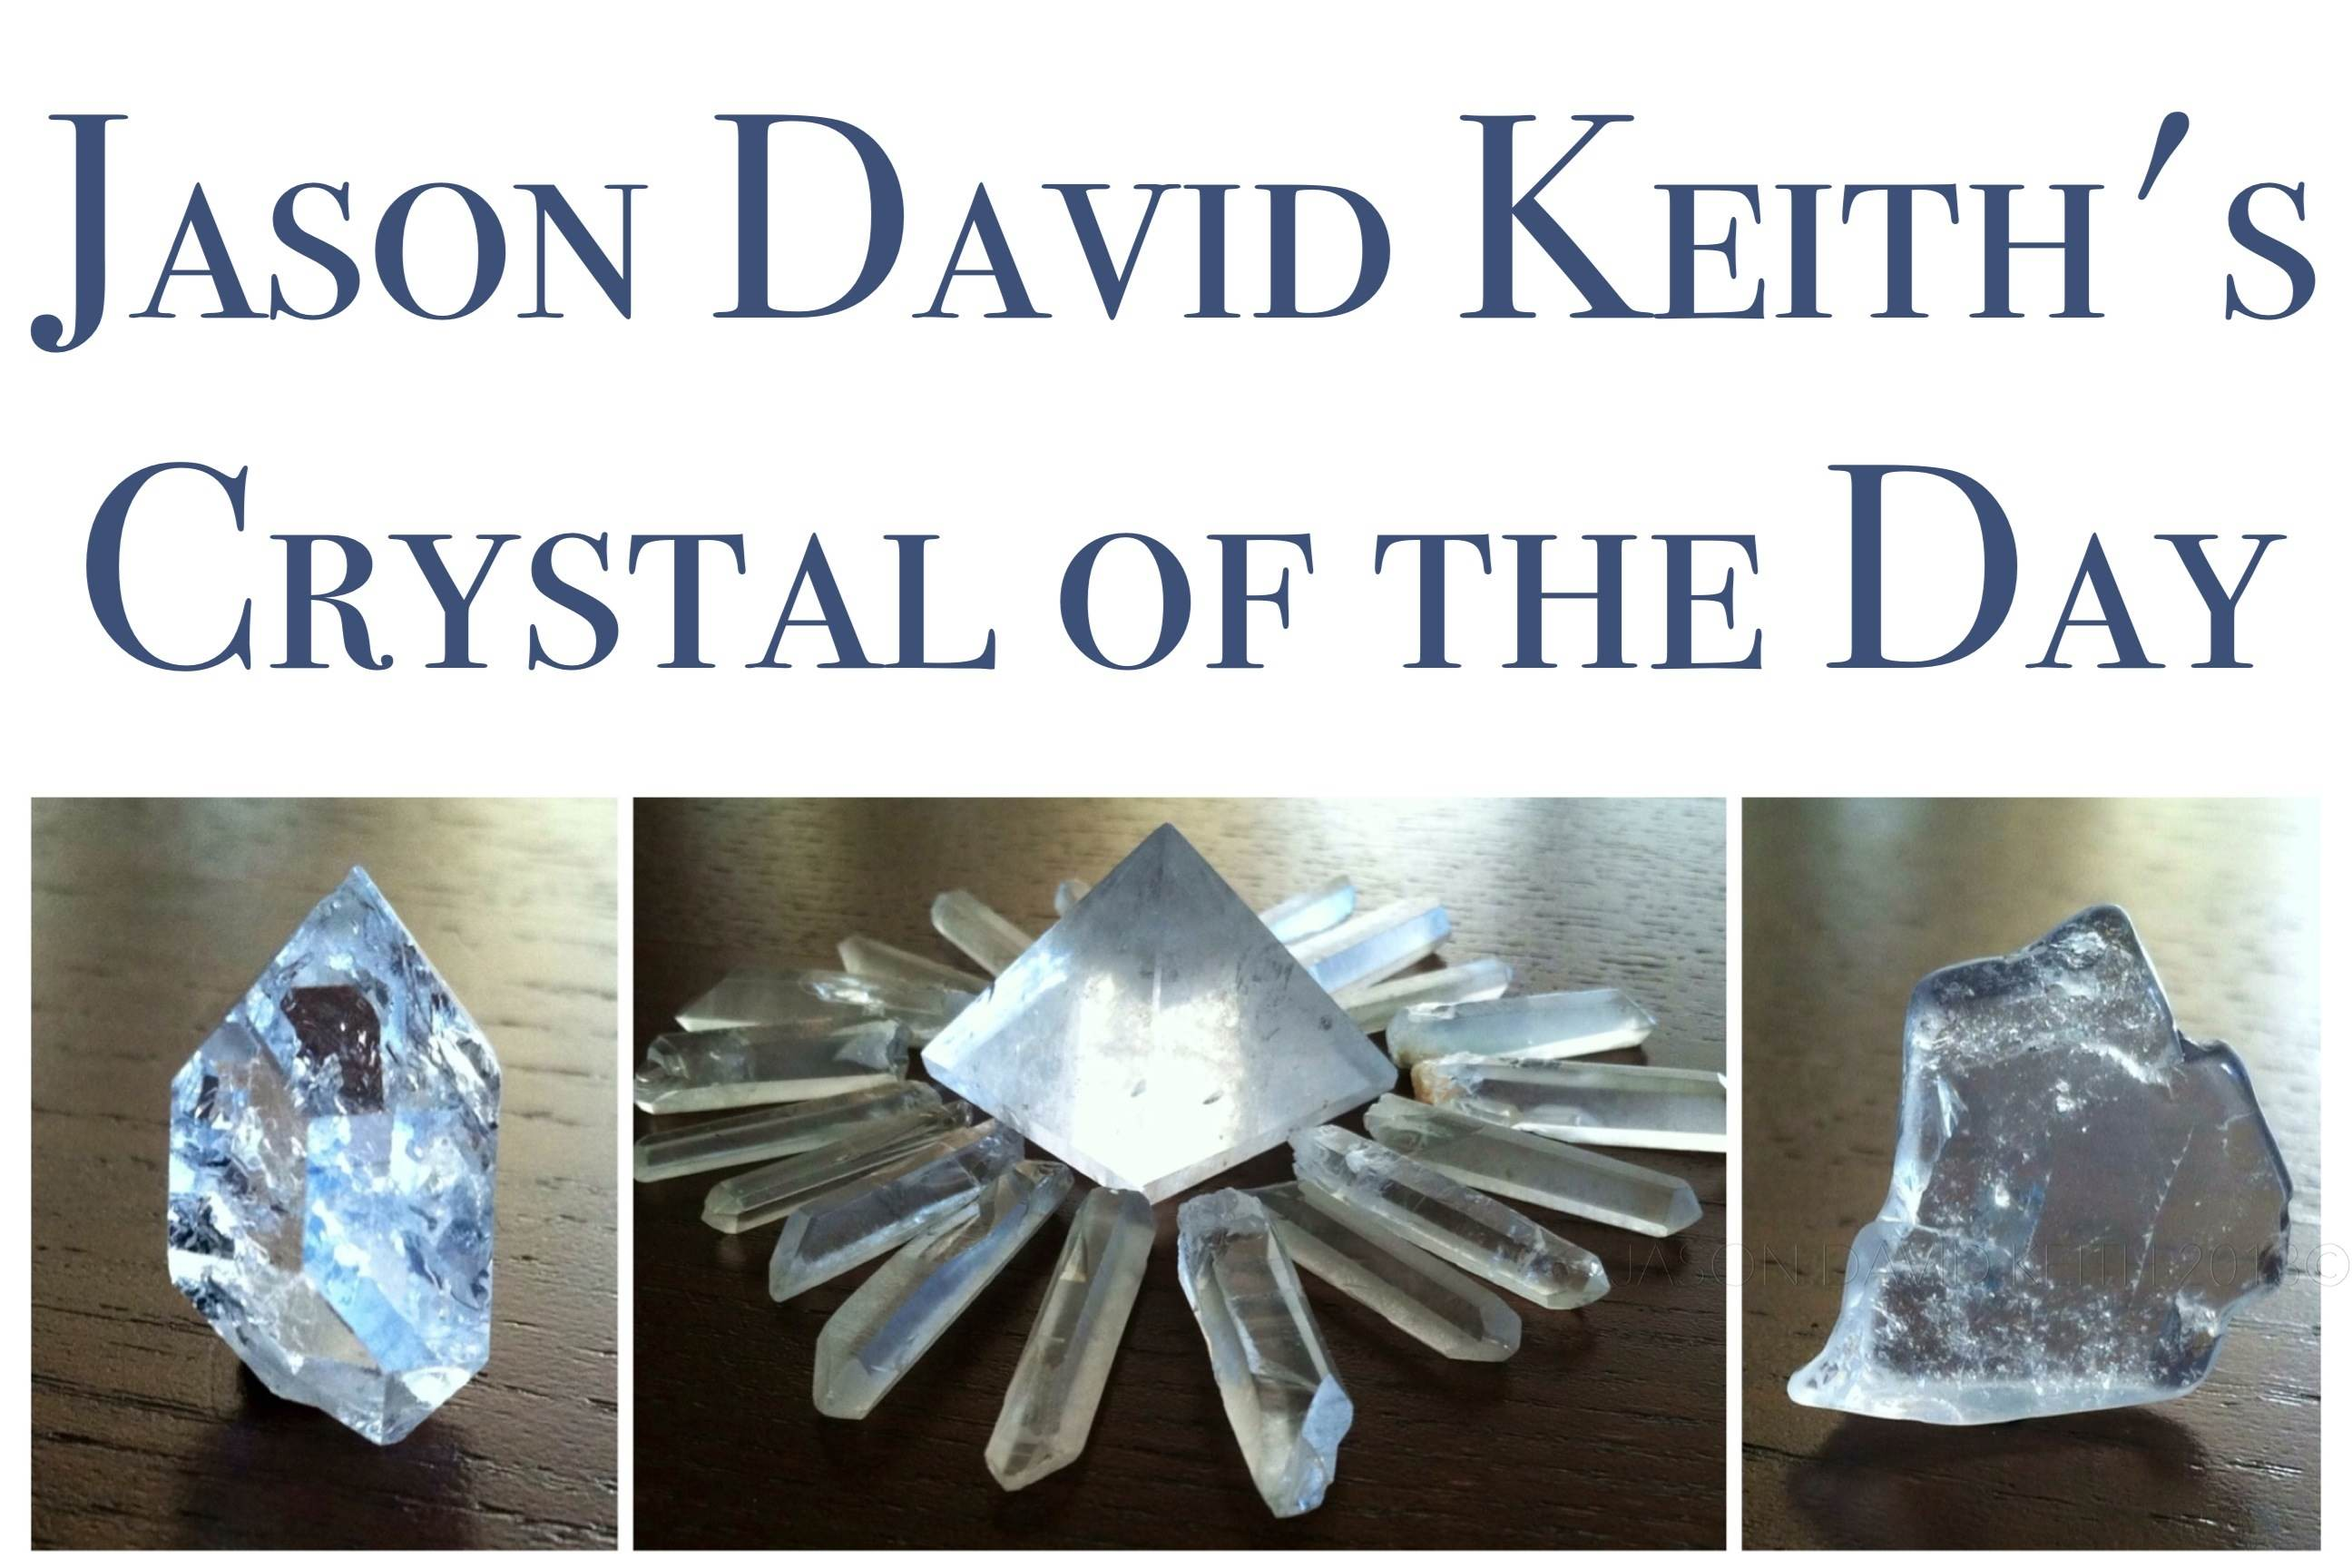 Jason David Keith's Crystal of the Day